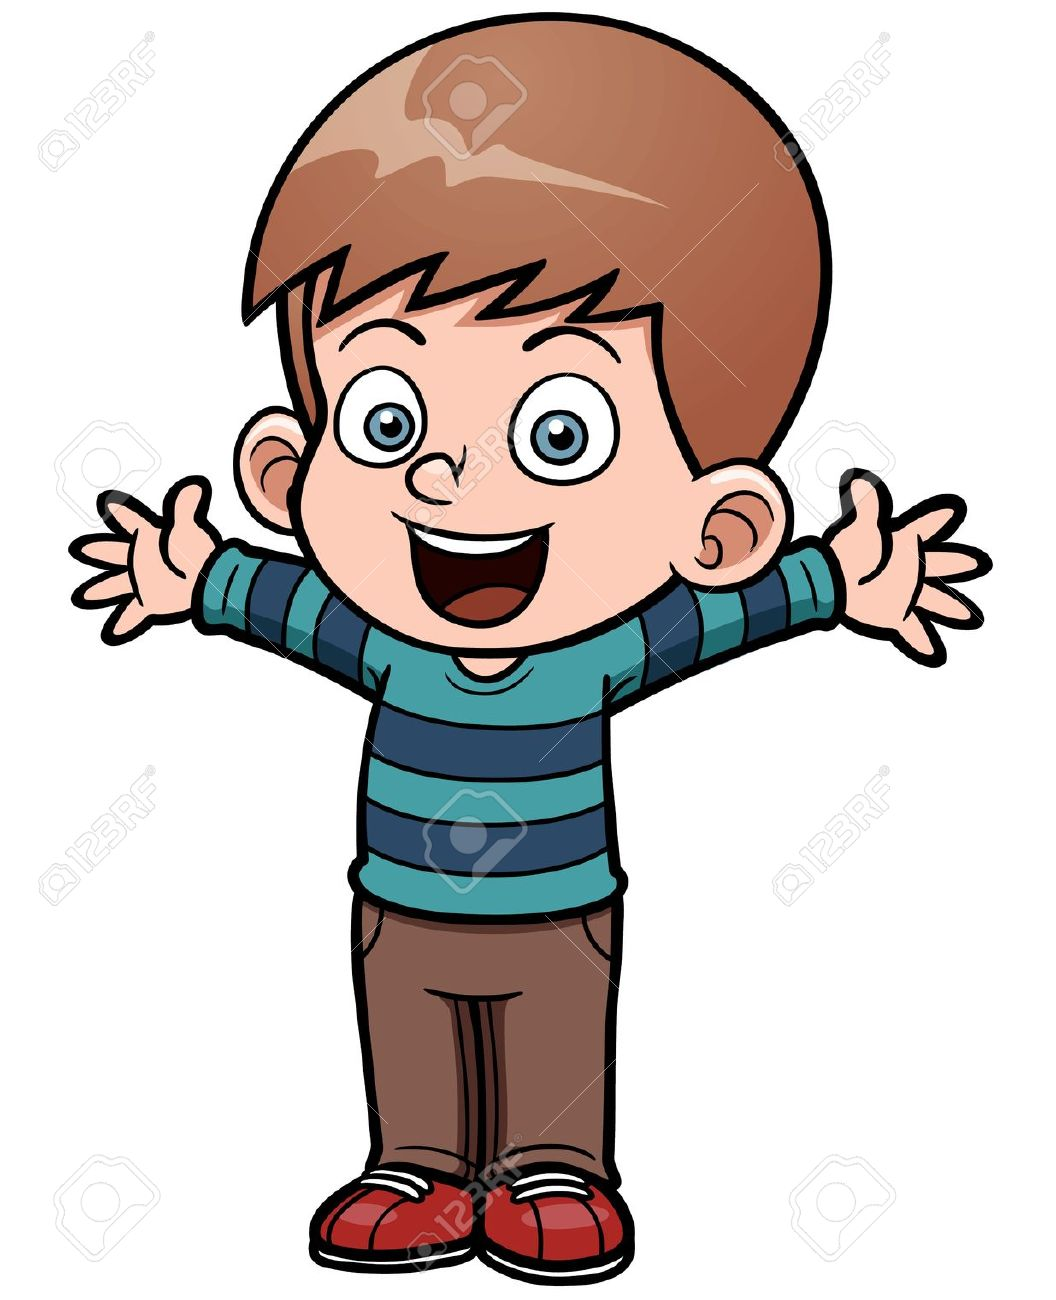 Little Boy Clipart & Little Boy Clip Art Images.